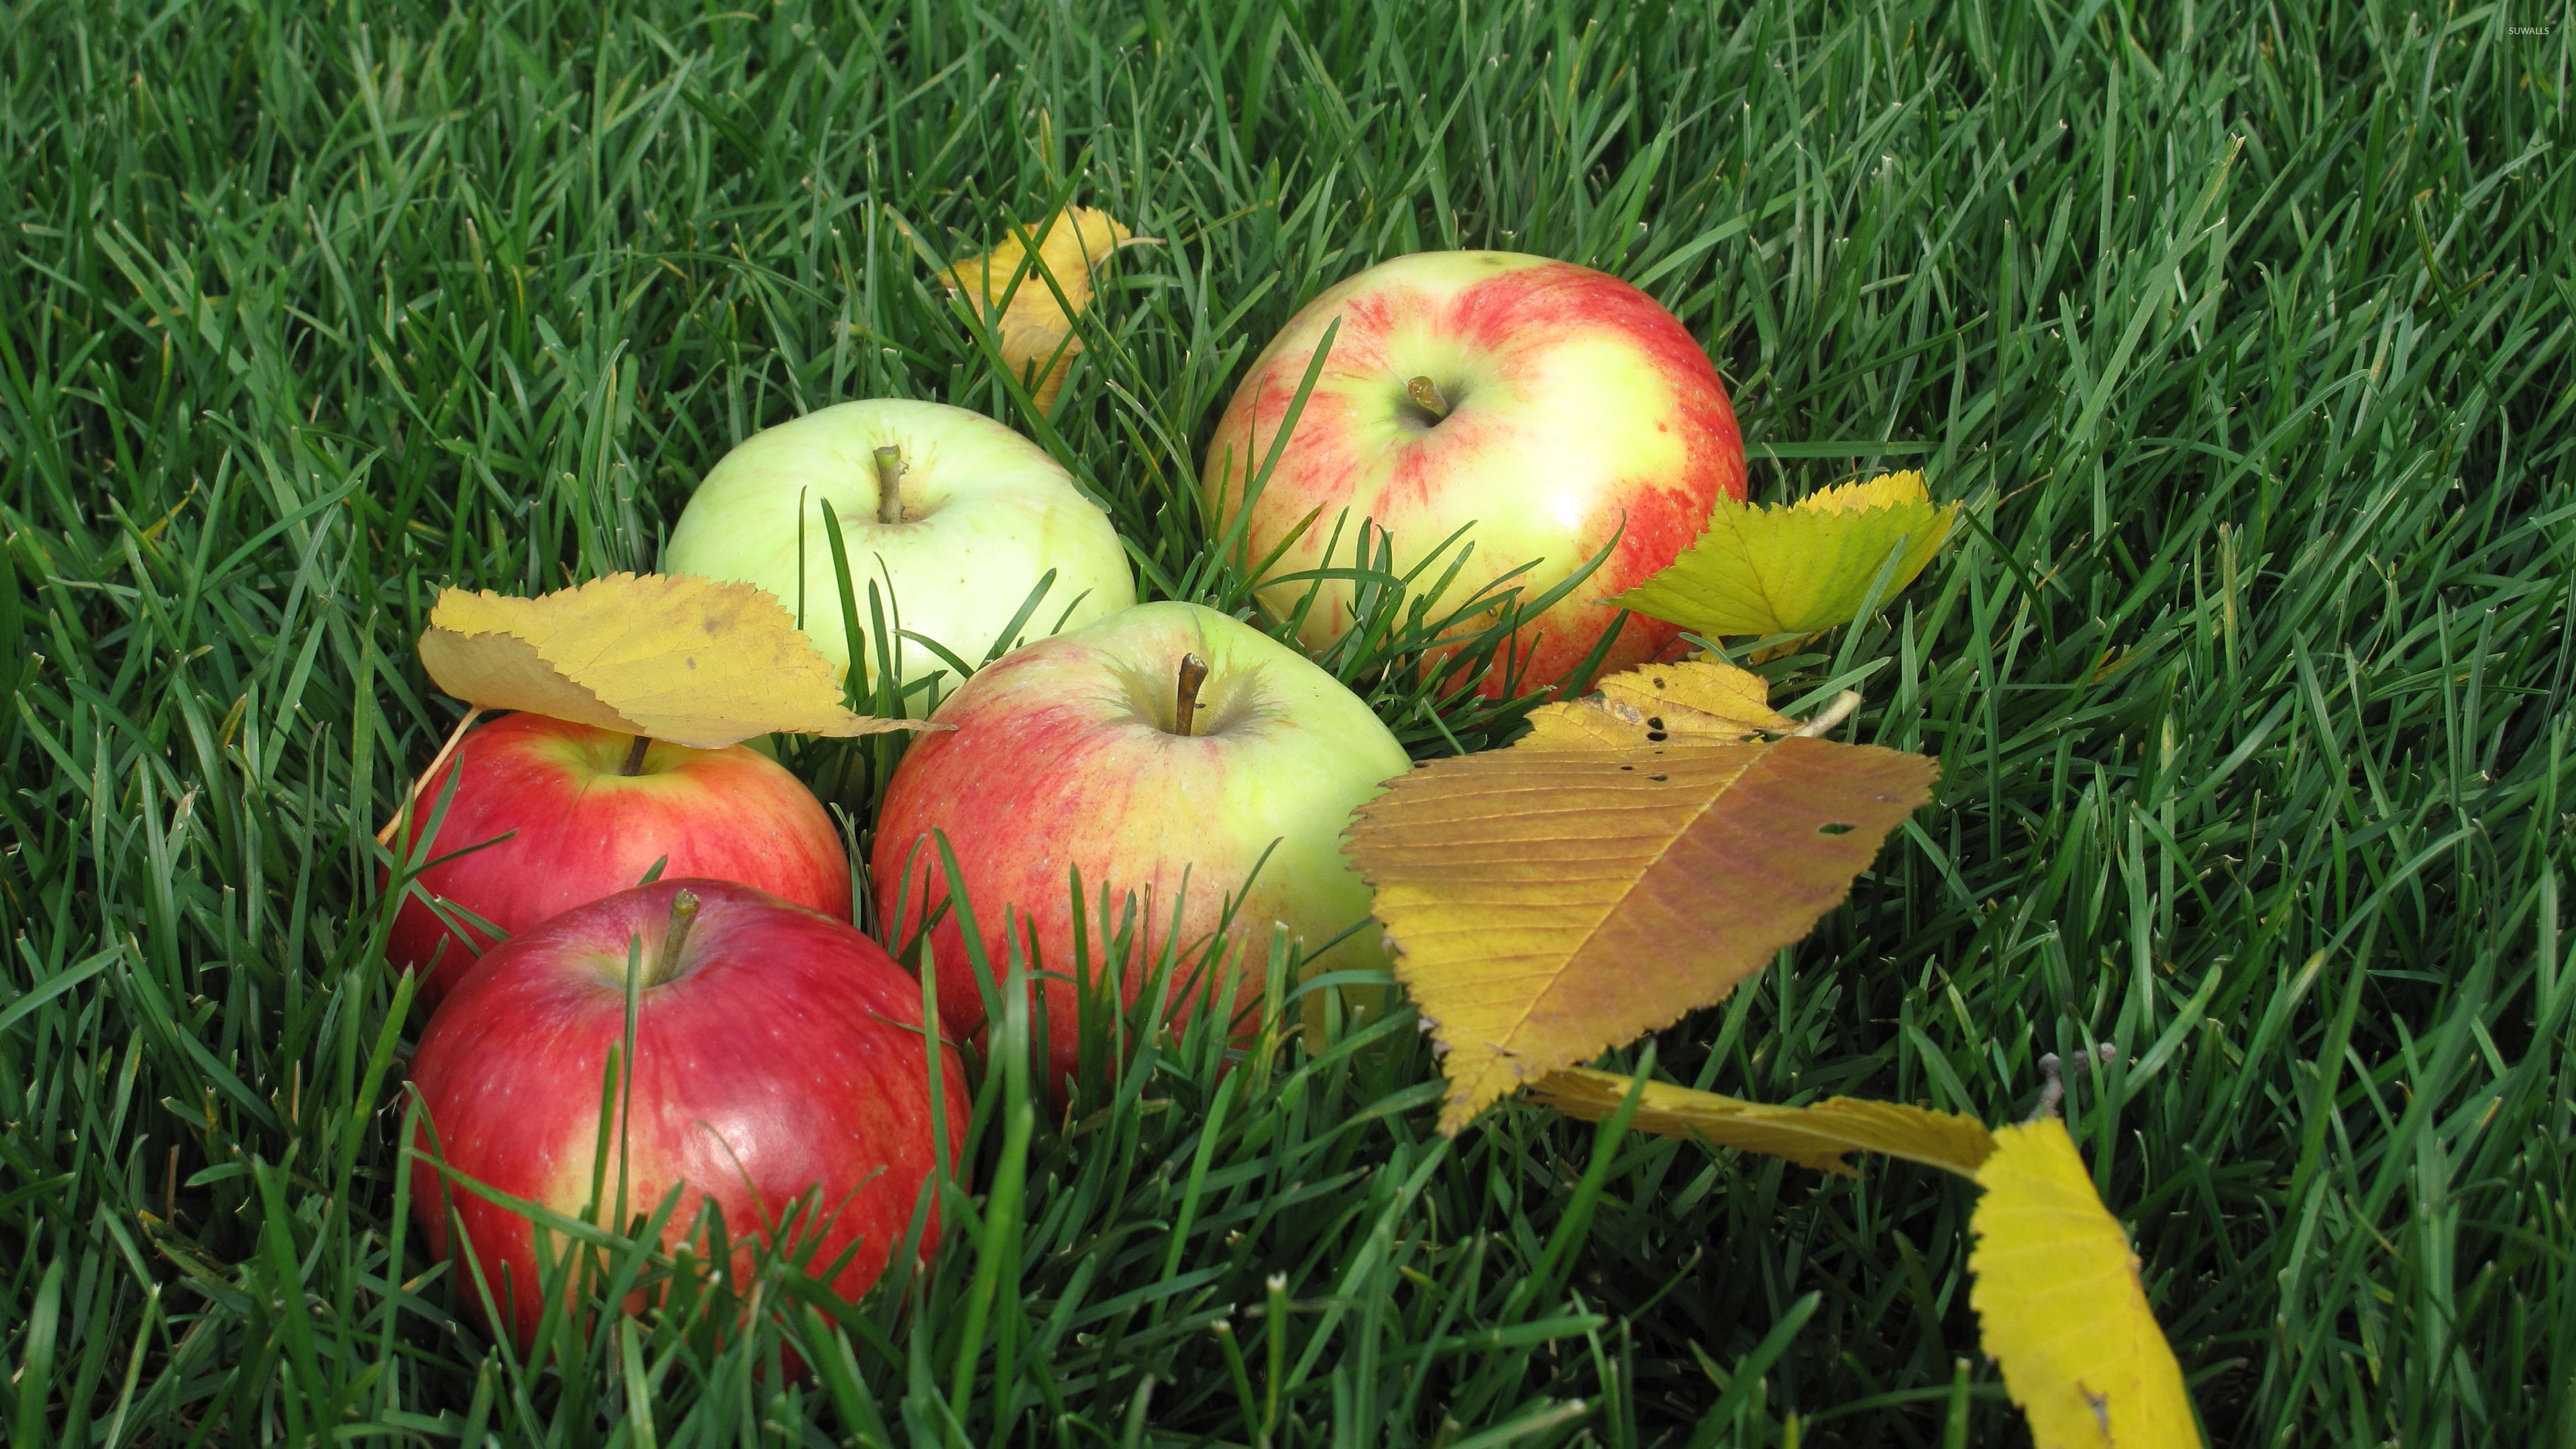 Apples on the grass wallpaper   1351556 3840x2160